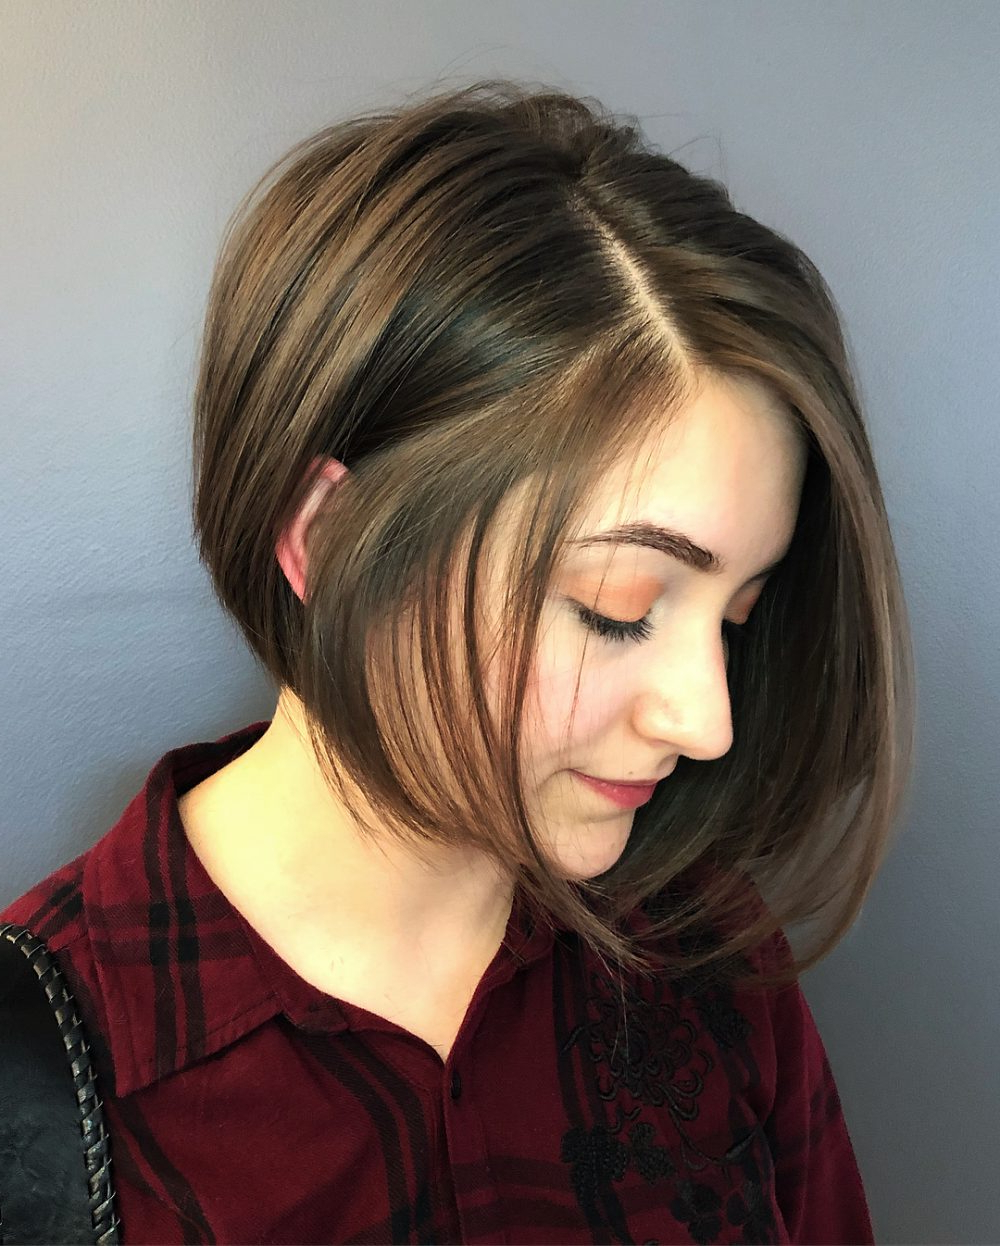 33 Flattering Short Hairstyles For Round Faces In 2018 With Regard To Short Hairstyles For Round Faces And Glasses (View 20 of 25)